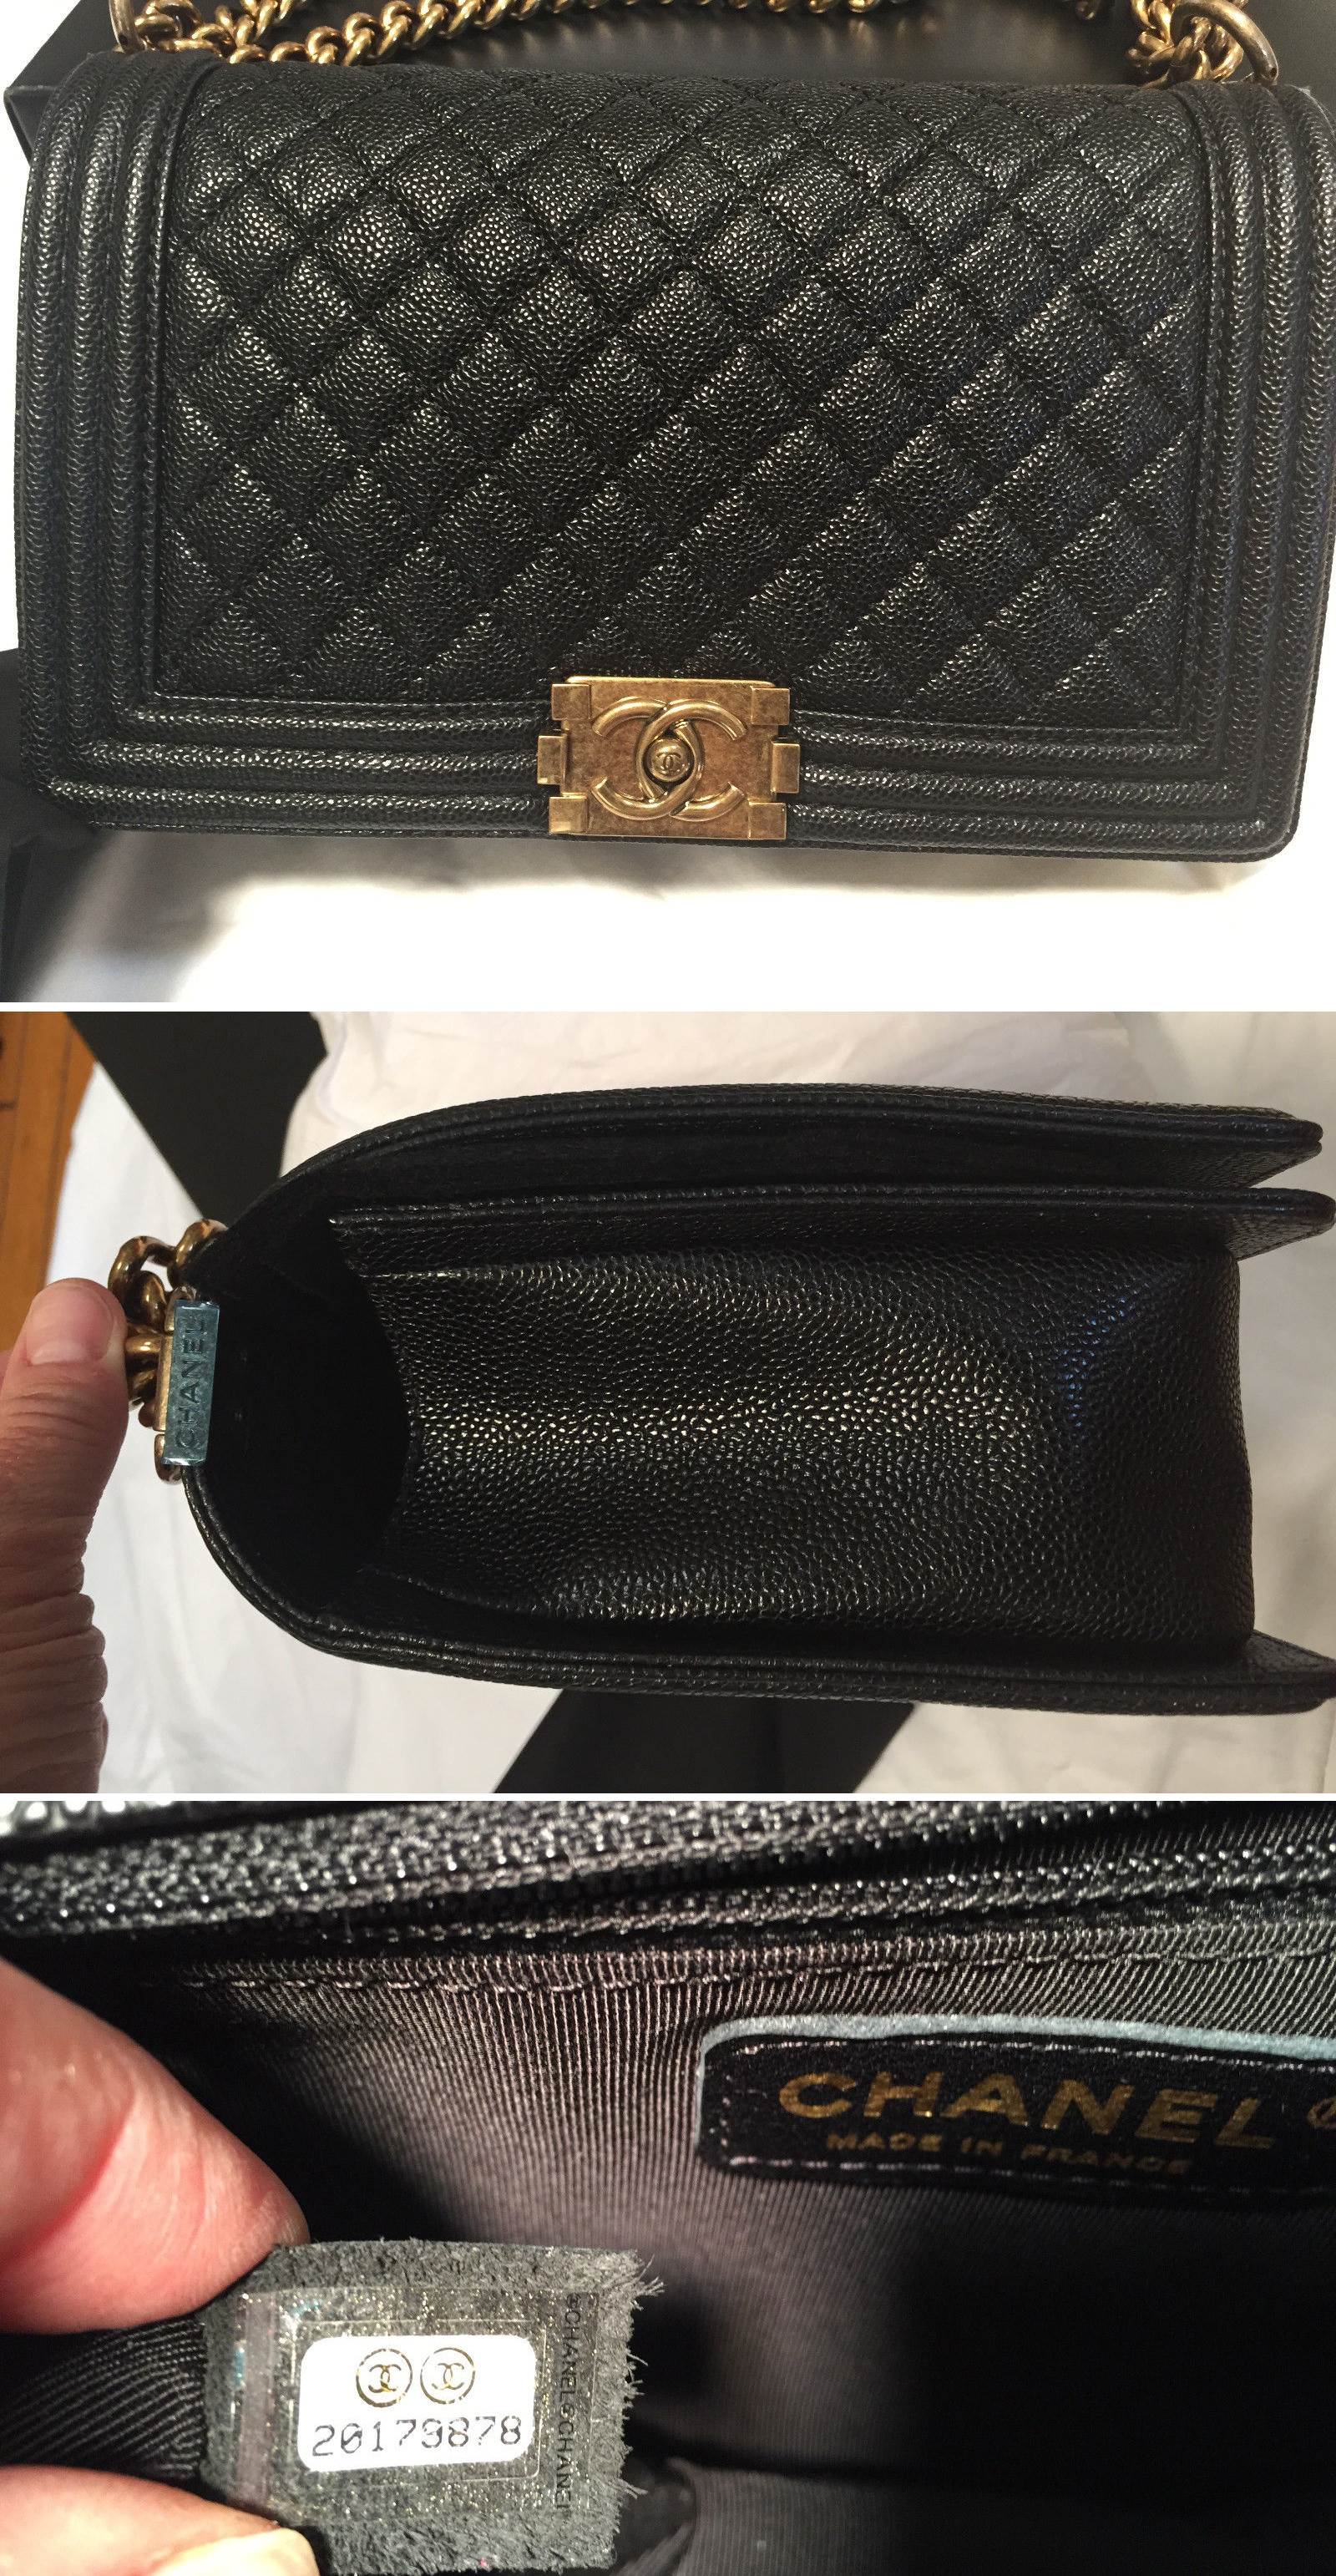 black caviar chanel le boy flap bag